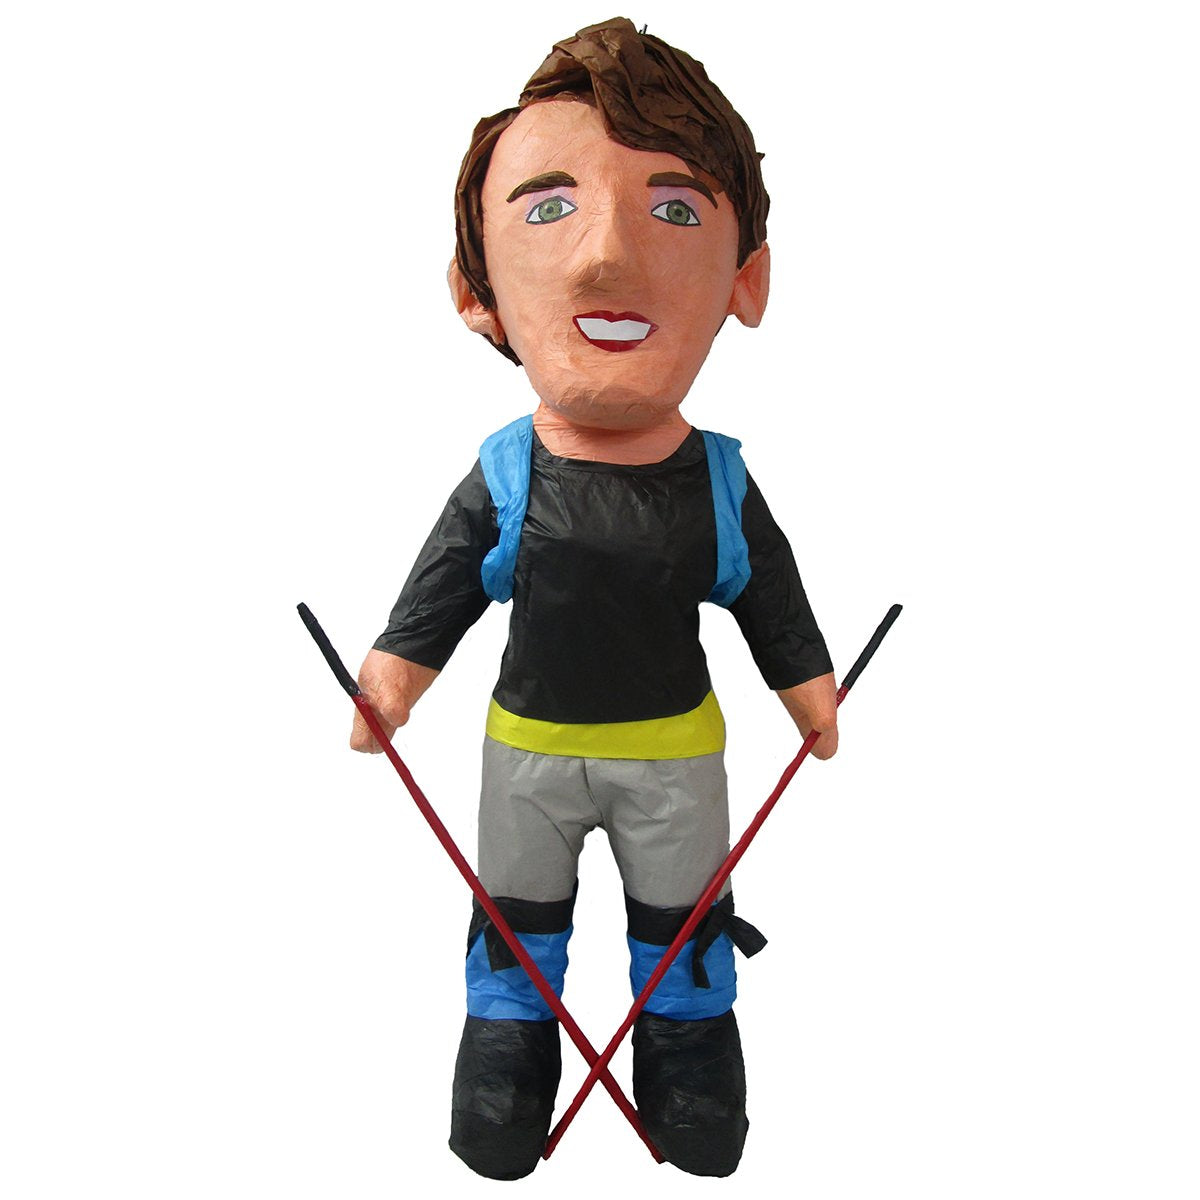 CUSTOM PERSON PINATA - HIKER